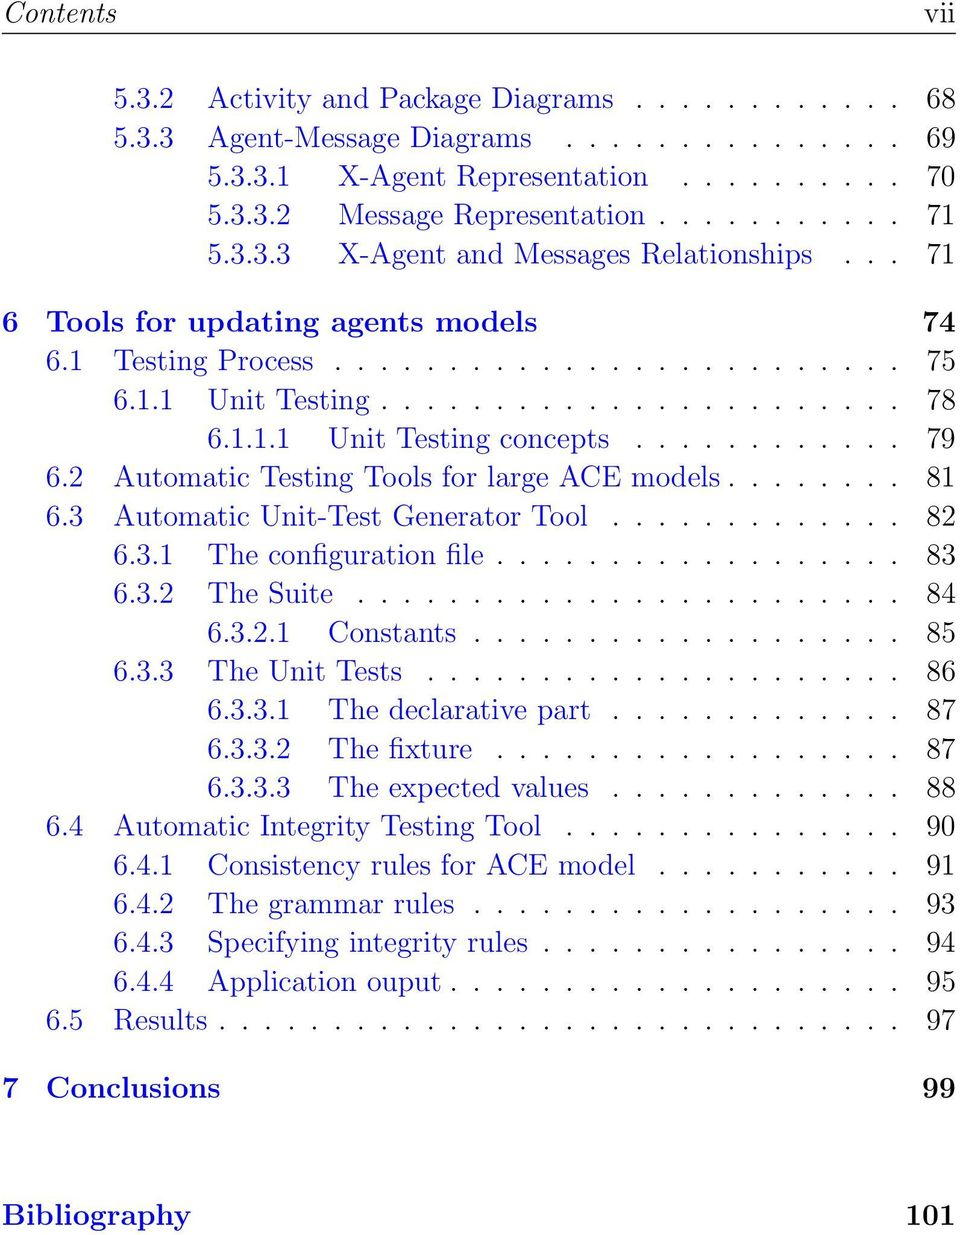 ........... 79 6.2 Automatic Testing Tools for large ACE models........ 81 6.3 Automatic Unit-Test Generator Tool............. 82 6.3.1 The configuration file.................. 83 6.3.2 The Suite.